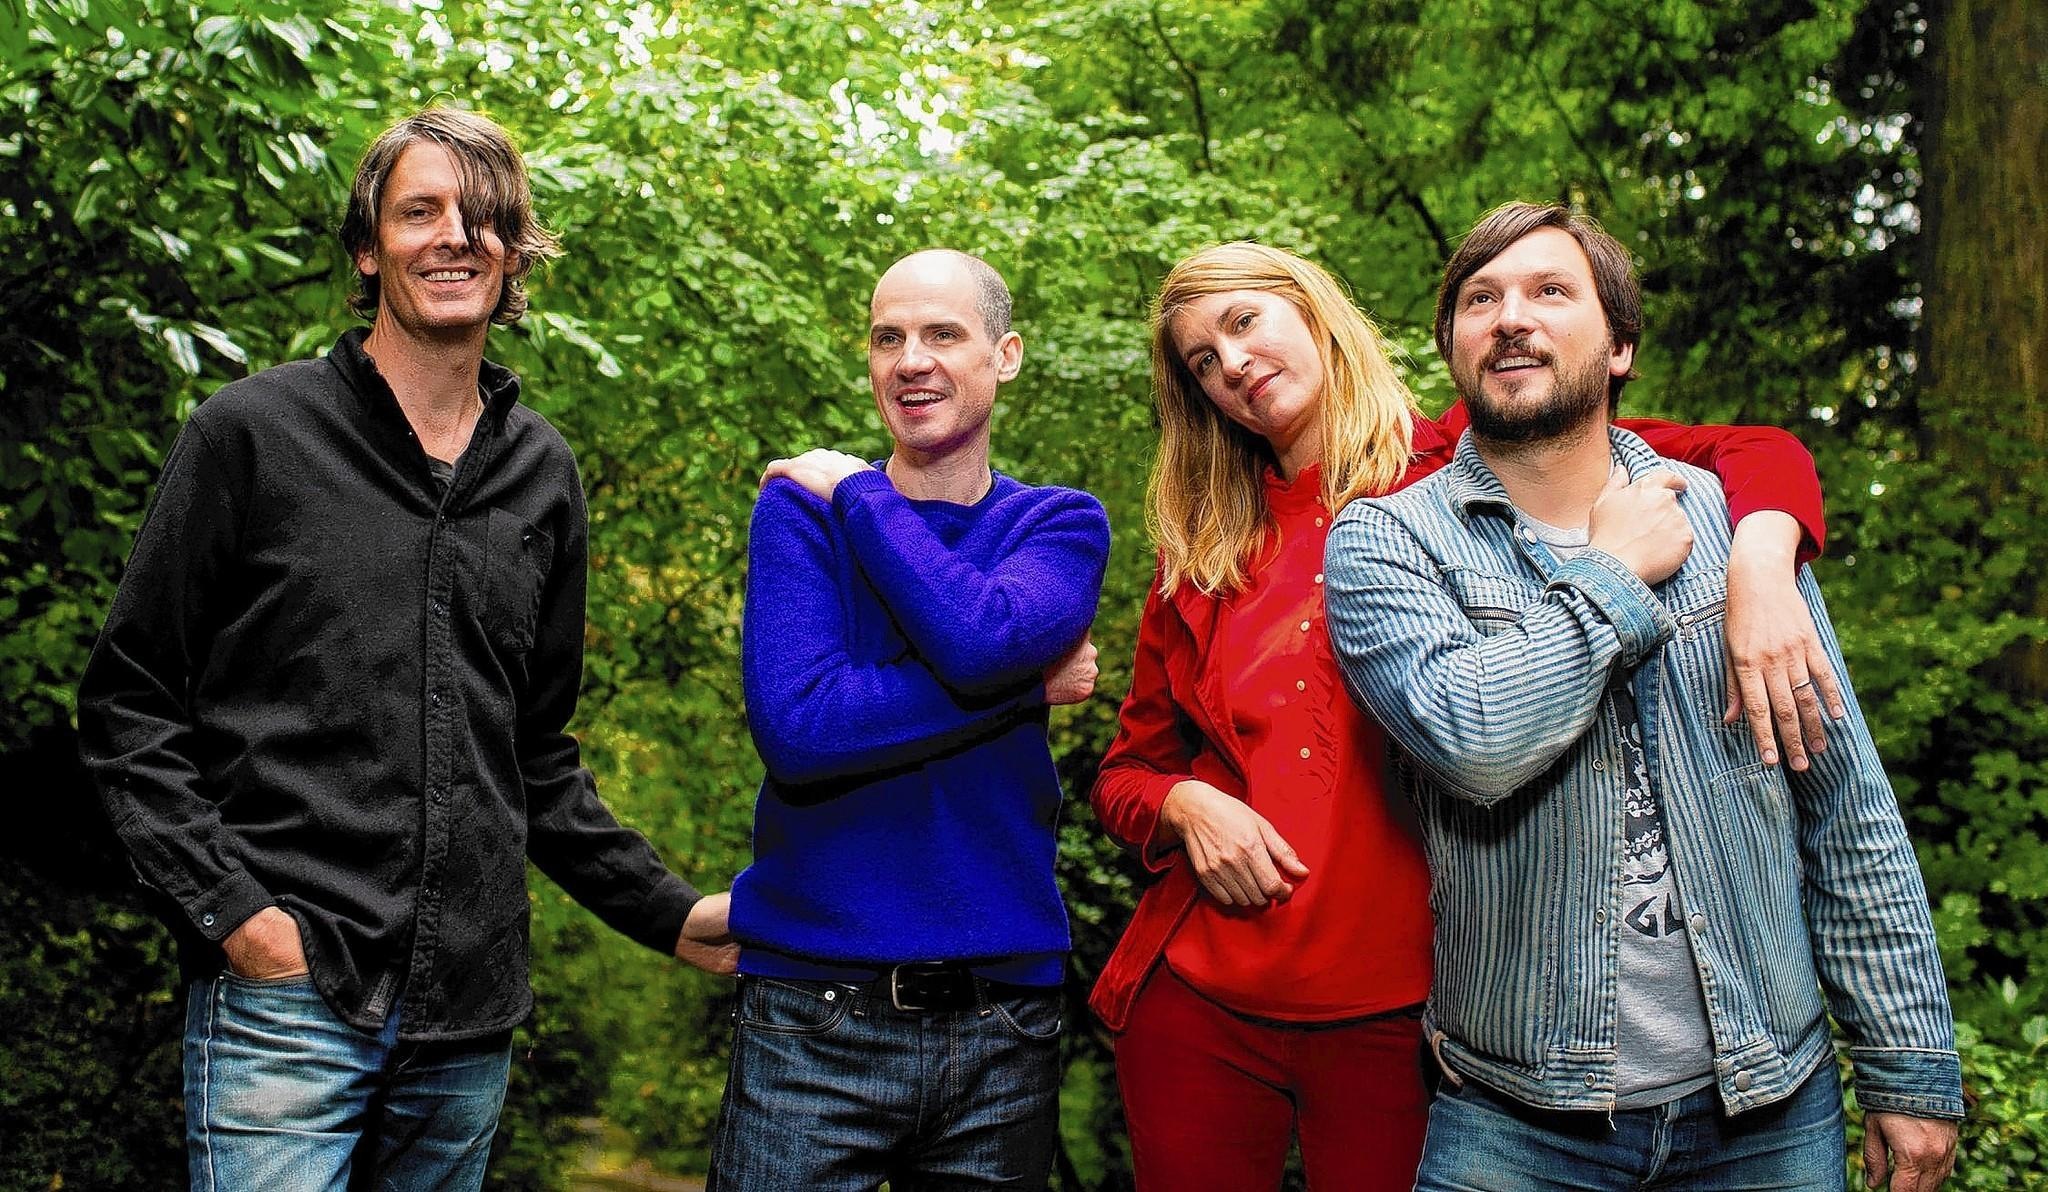 Stephen Malkmus and the Jicks are touring behind their sixth studio album, 'Wig Out at Jagbags.'